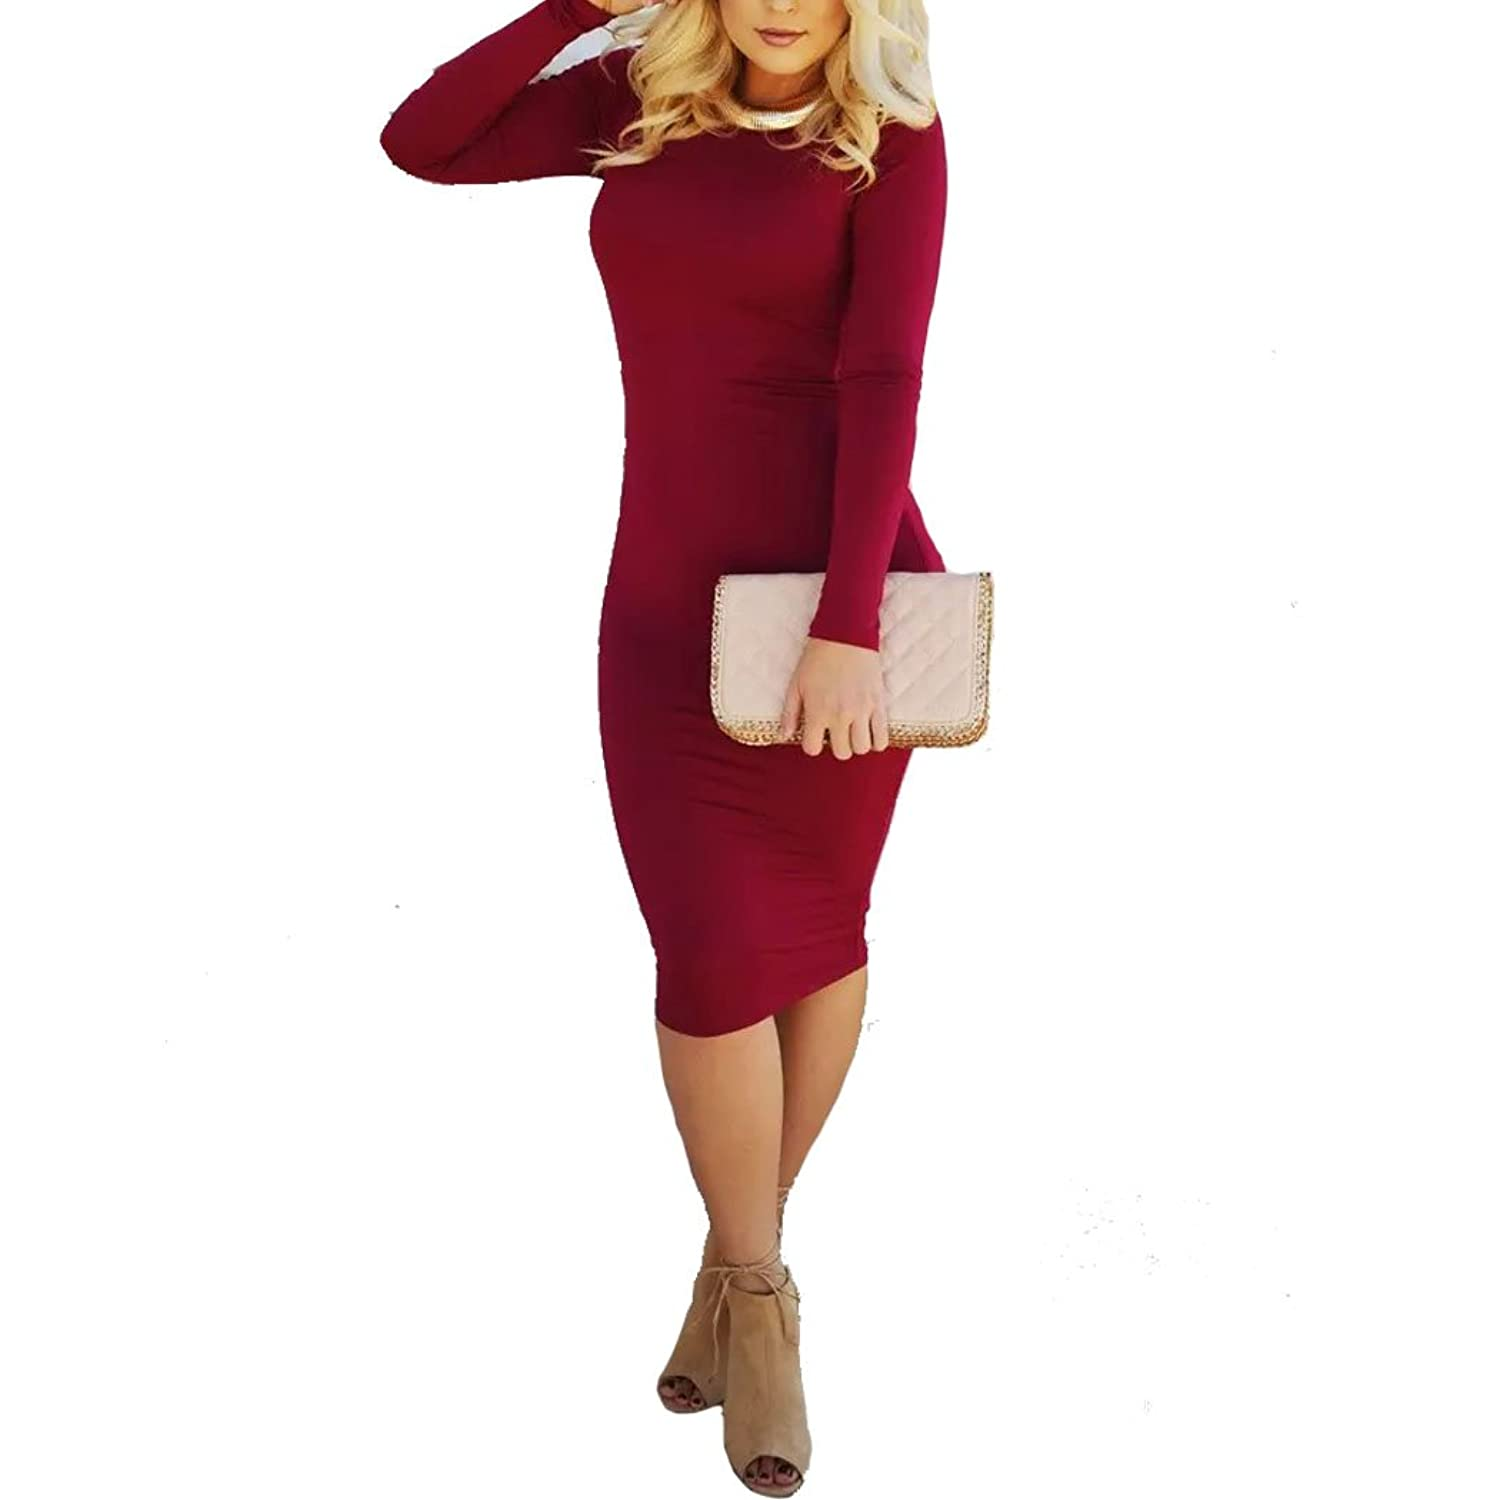 Women's Cut Out Backless Long Sleeve Bodycon Cocktail Tight Midi Dress